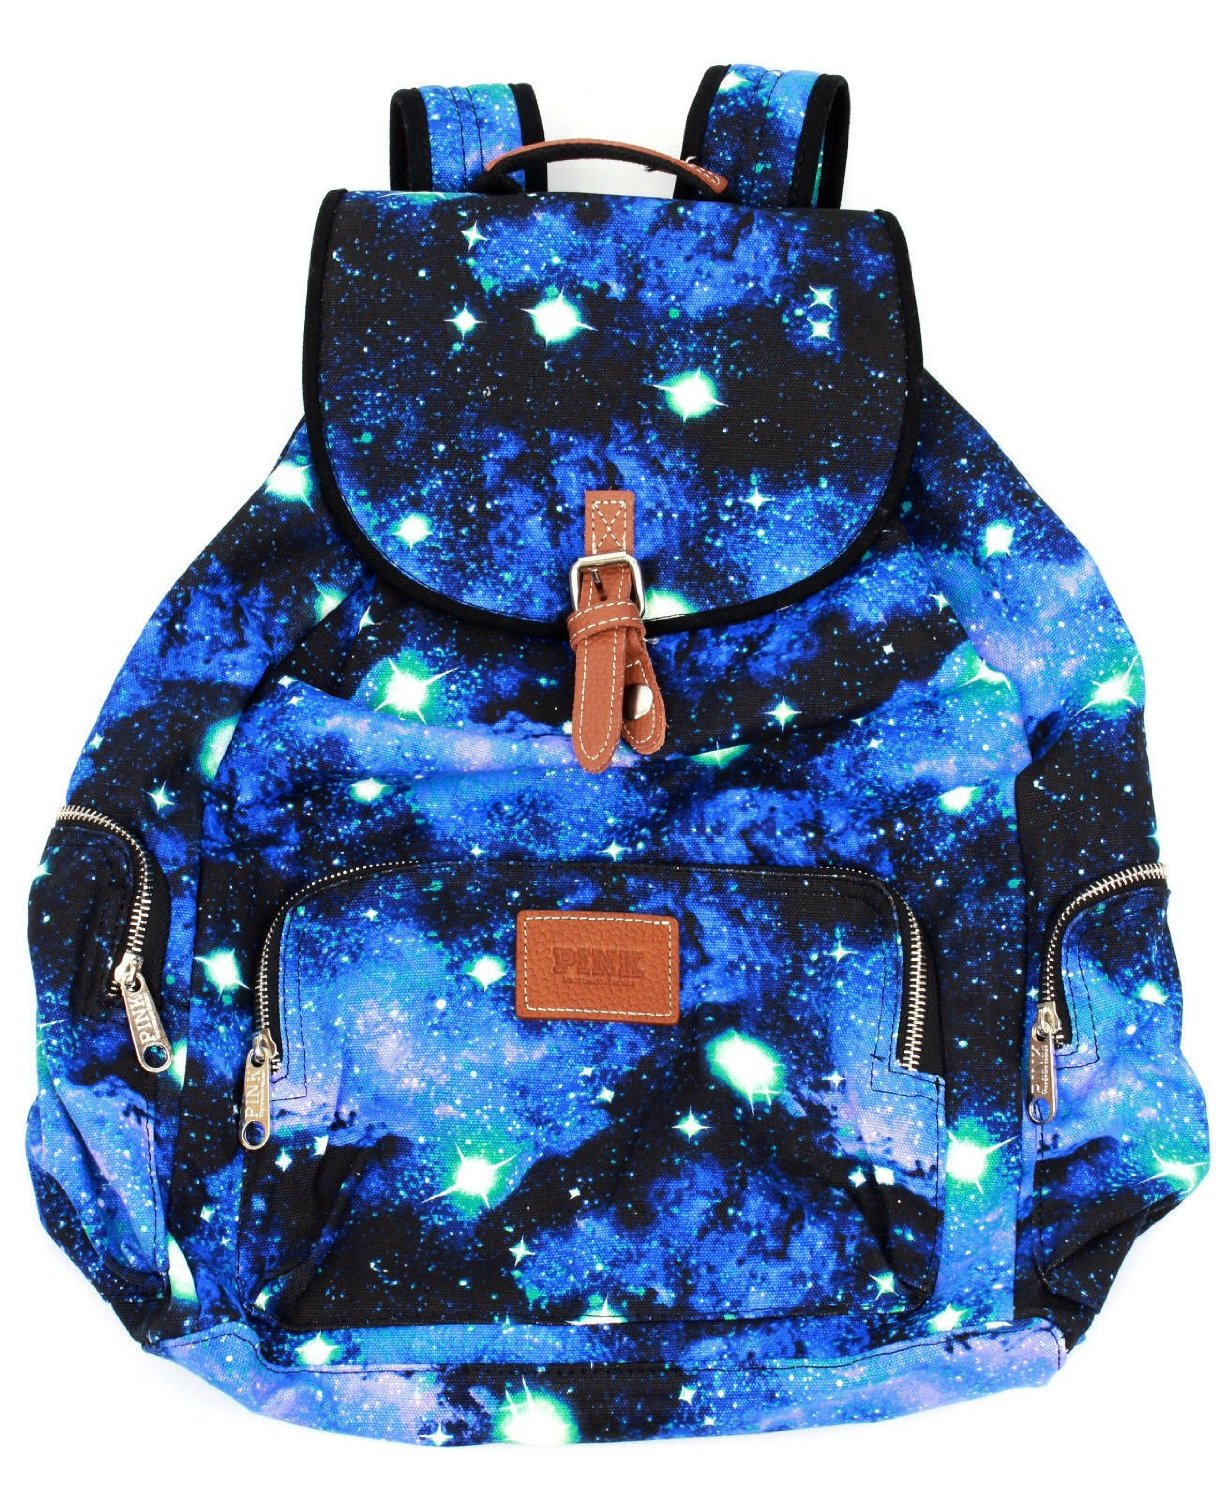 Amazon.com: Victoria's Secret PINK School Handbag Backpack Book Bag Tote - Celestial Blue Galaxy: Everything Else